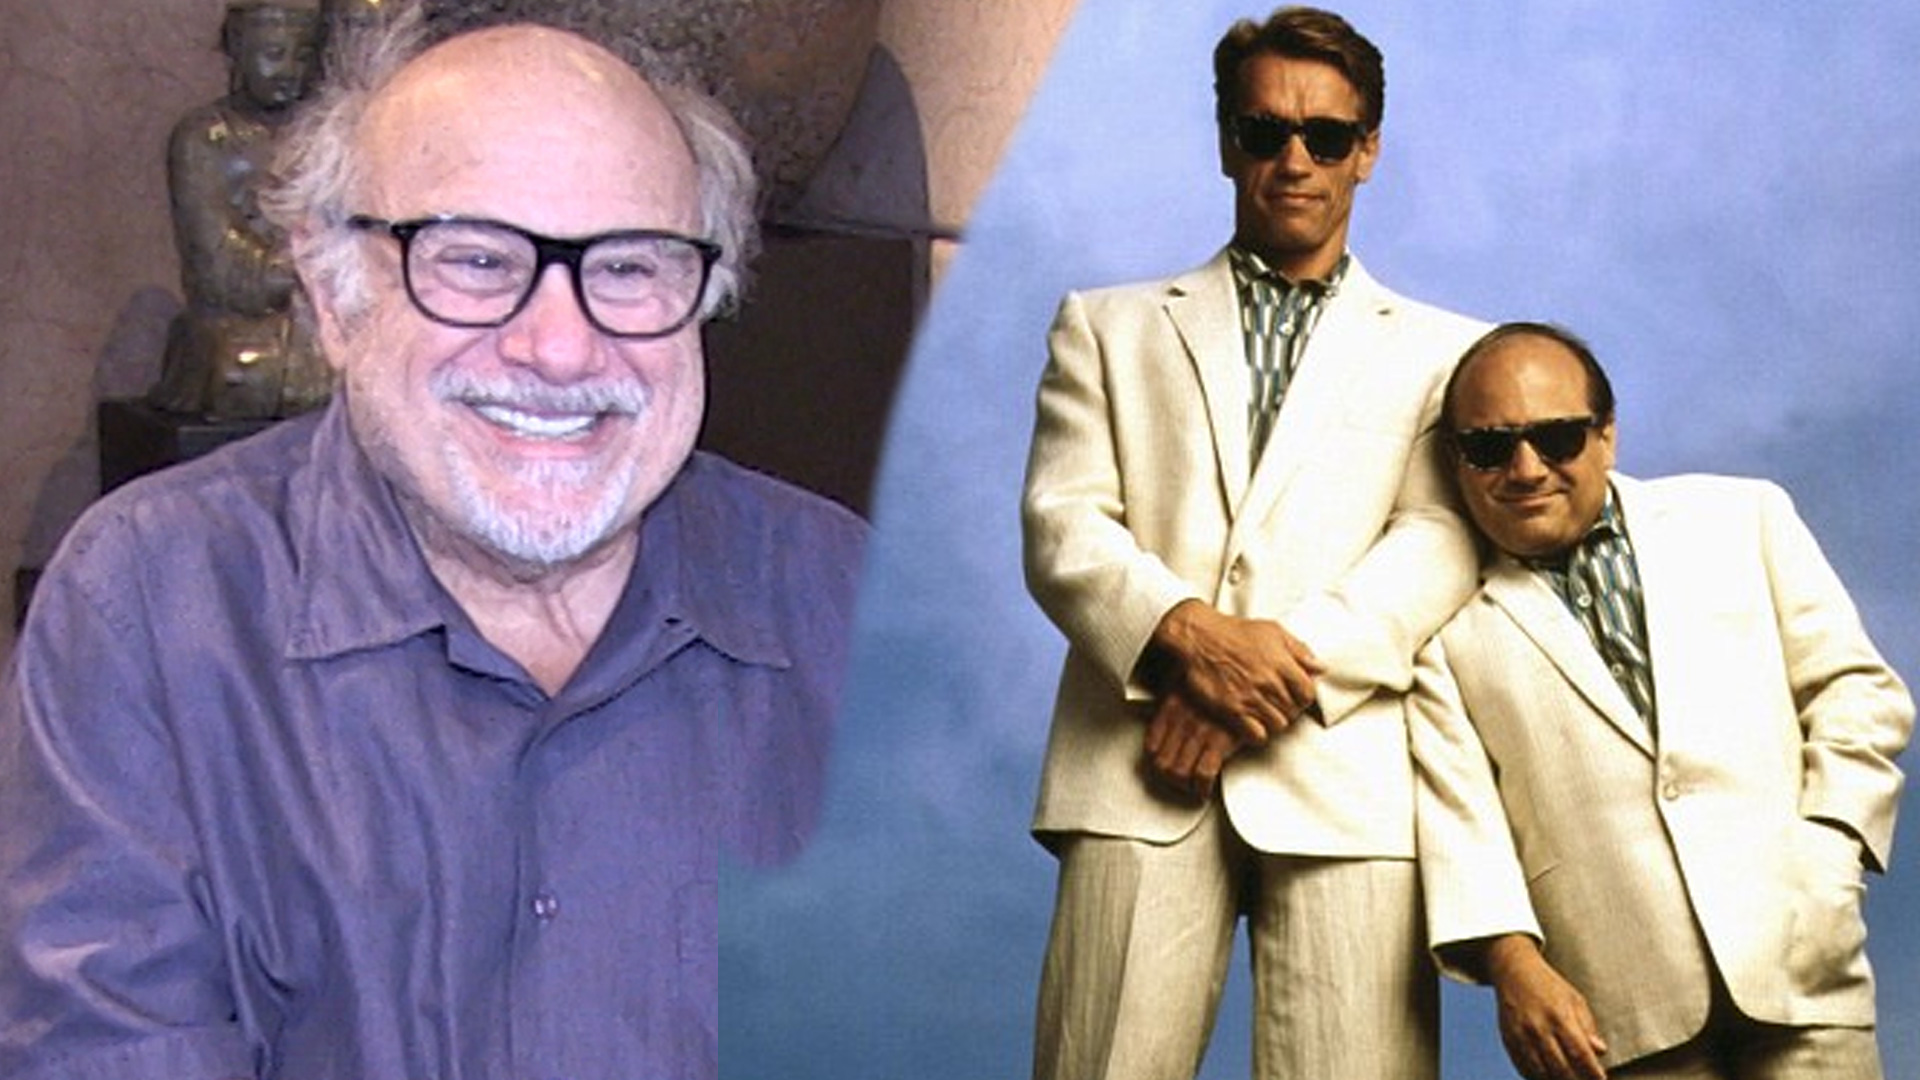 danny devito updates on the twins movie sequel triplets